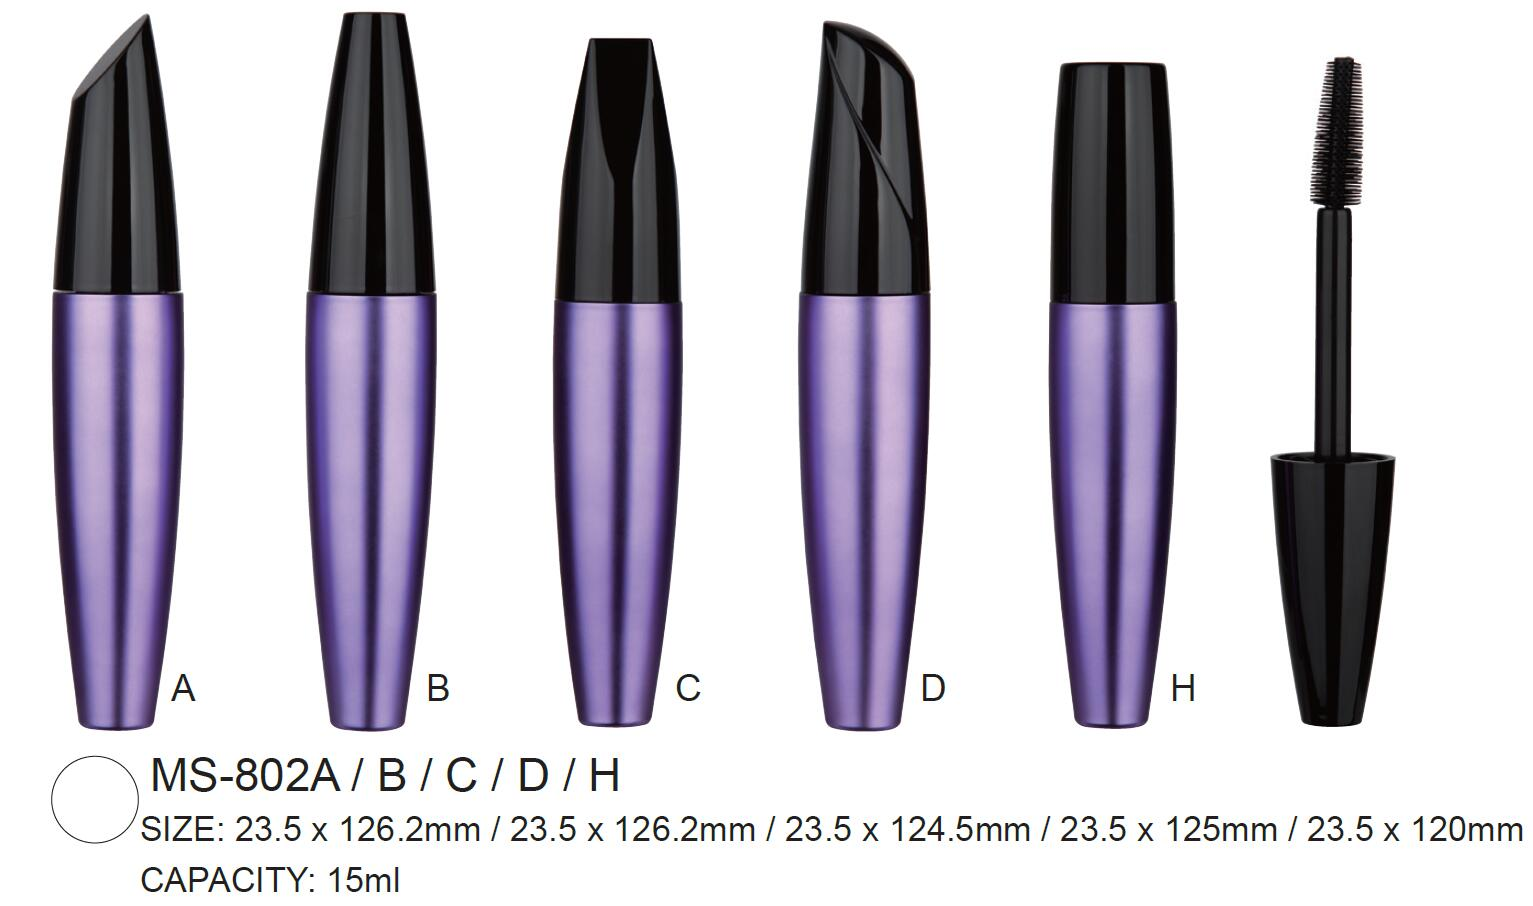 Mascara packaging